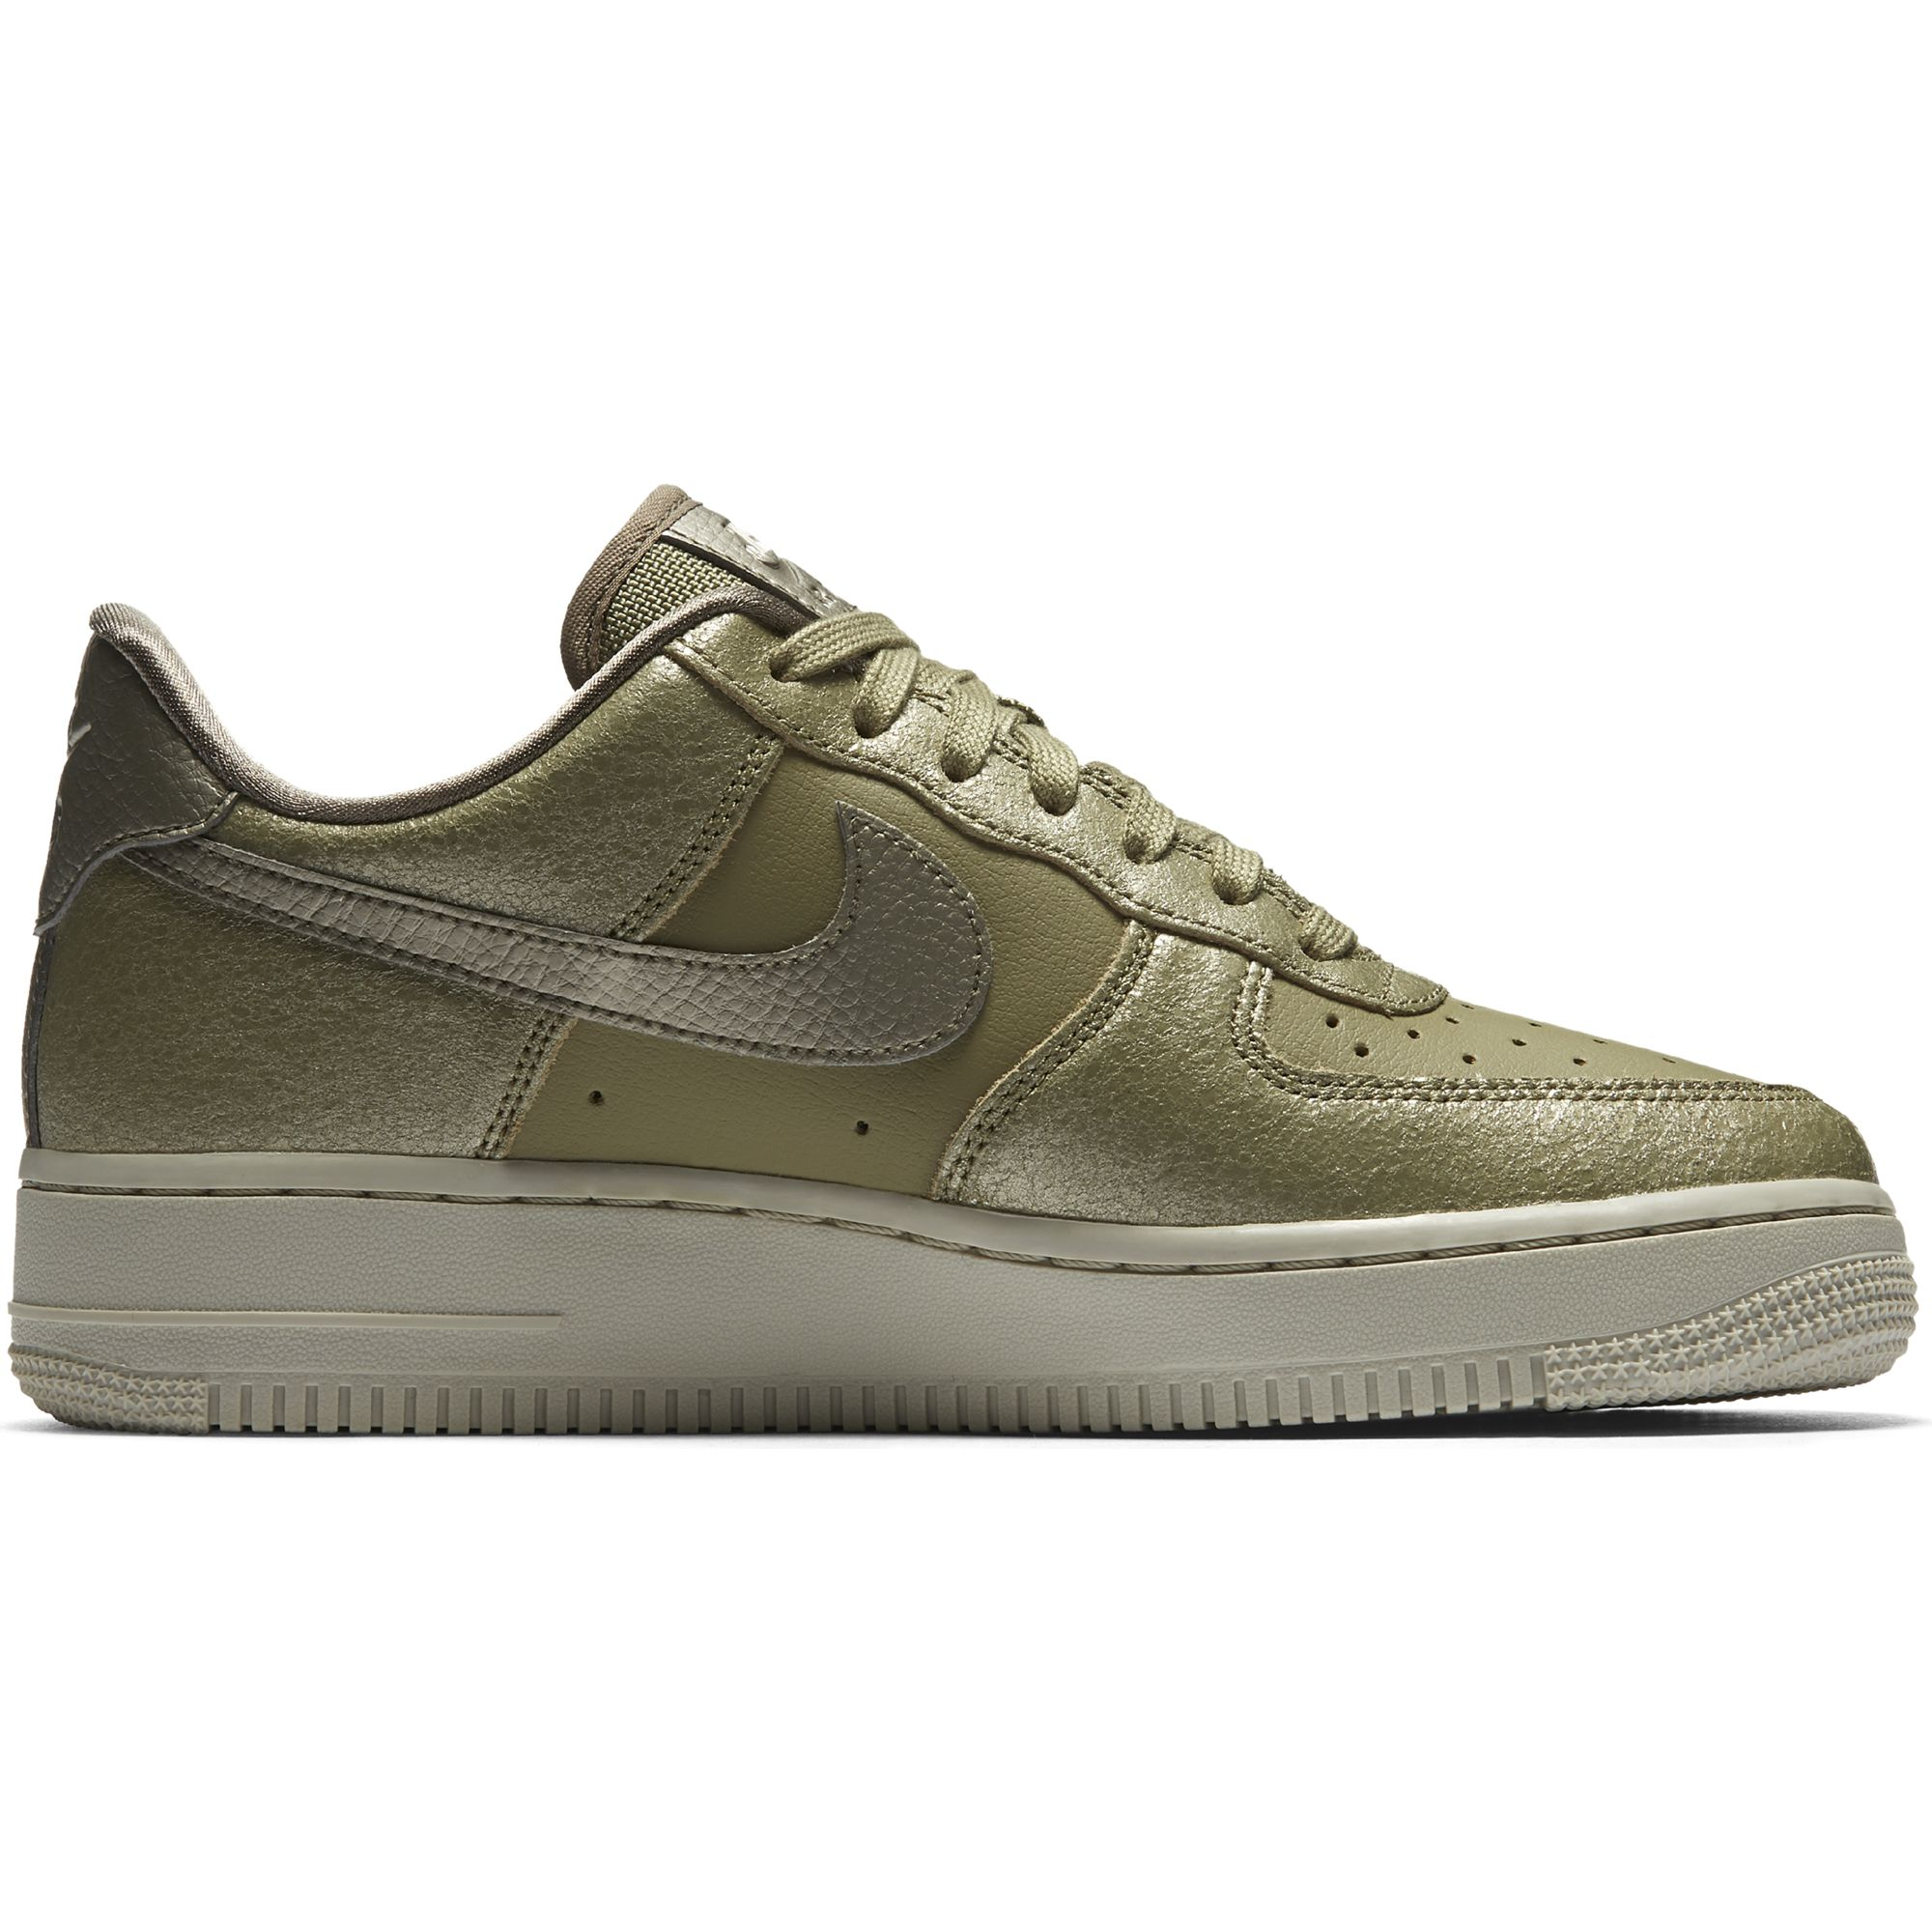 Nike AIR FORCE 1 ''07 PRM, ženske sportske tenisice, zelena, AIR FORCE